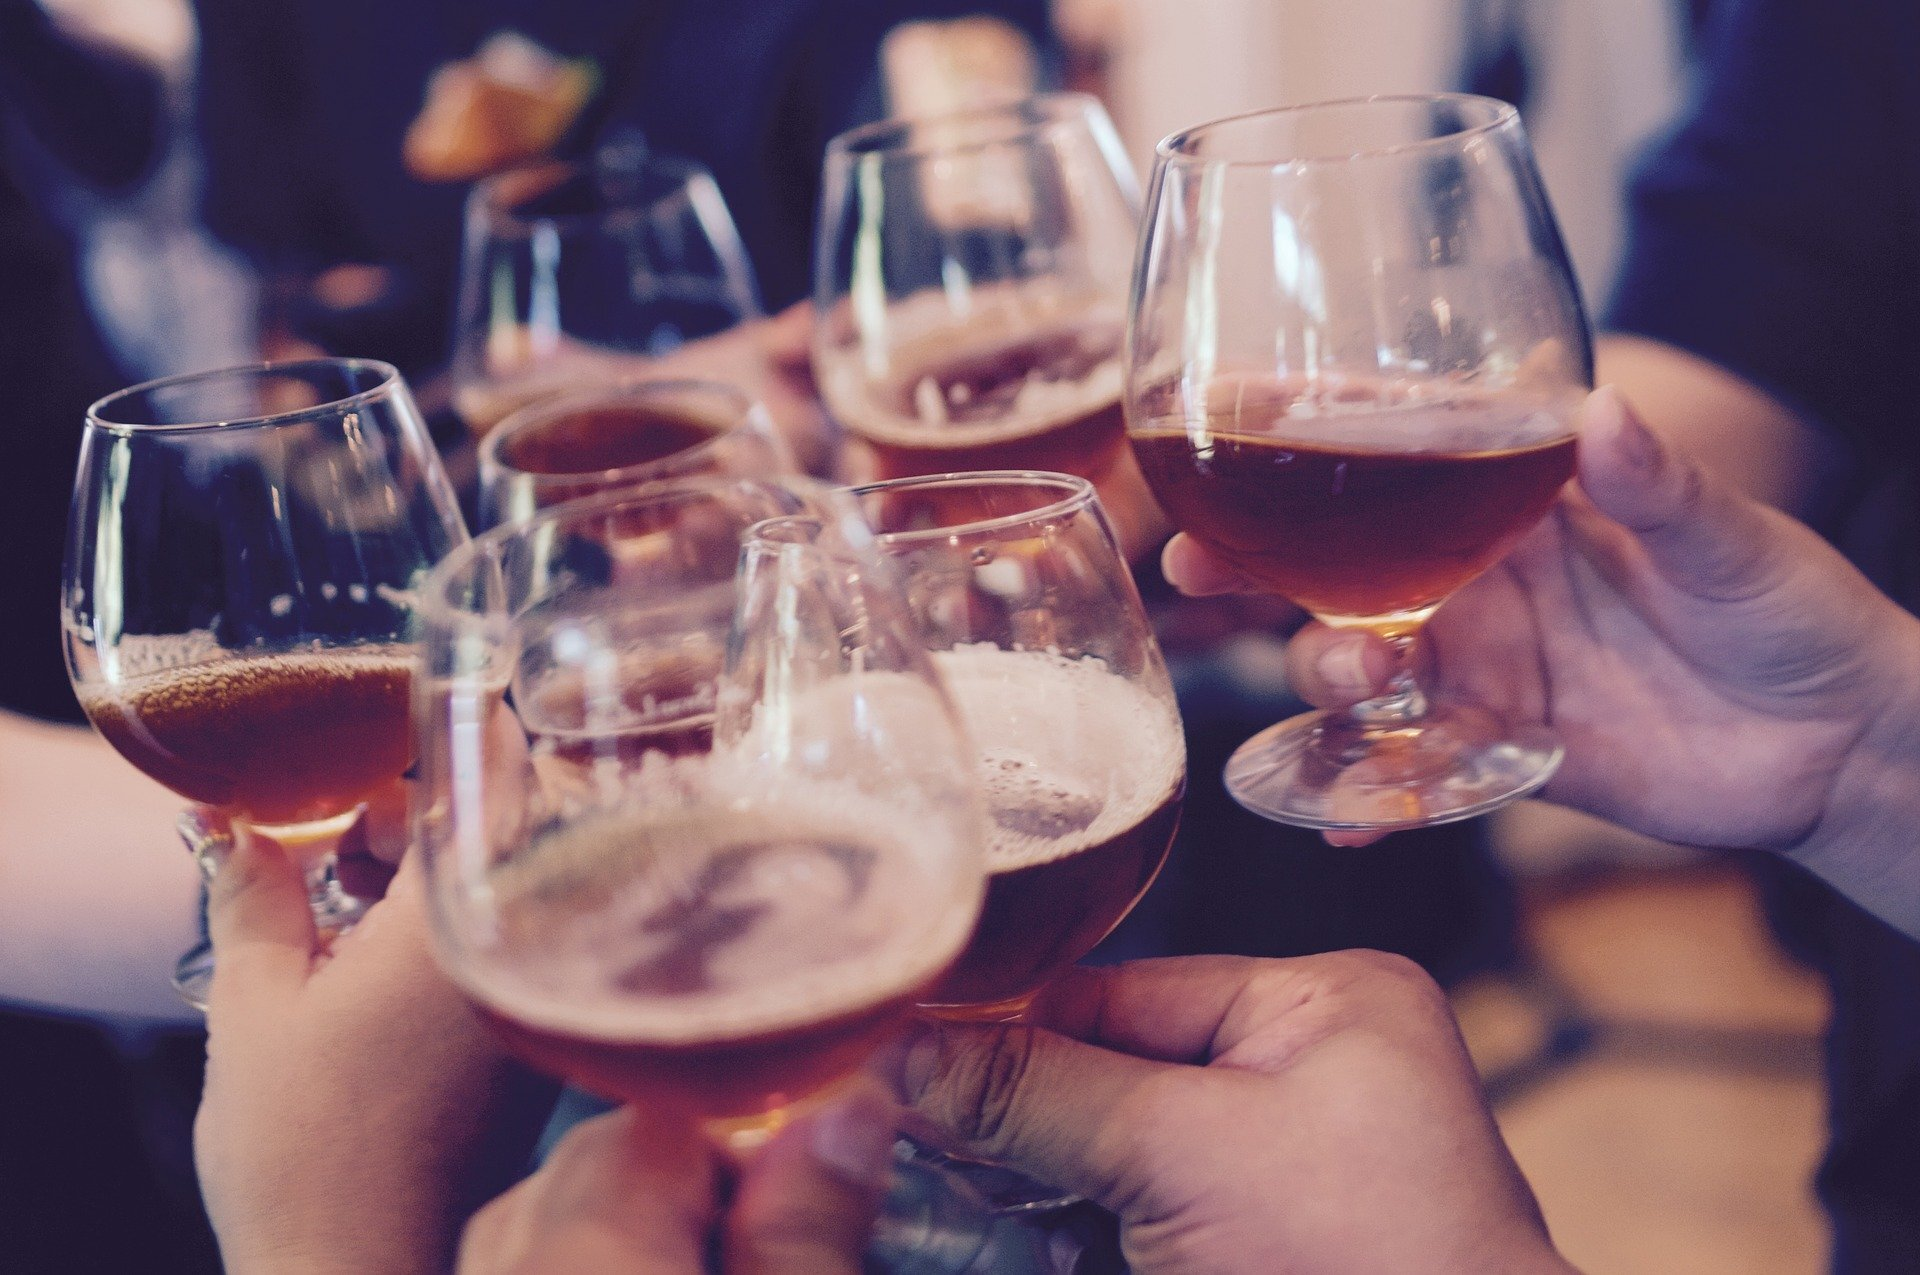 Romantic relationships mitigate effects of trauma on alcohol use among college students